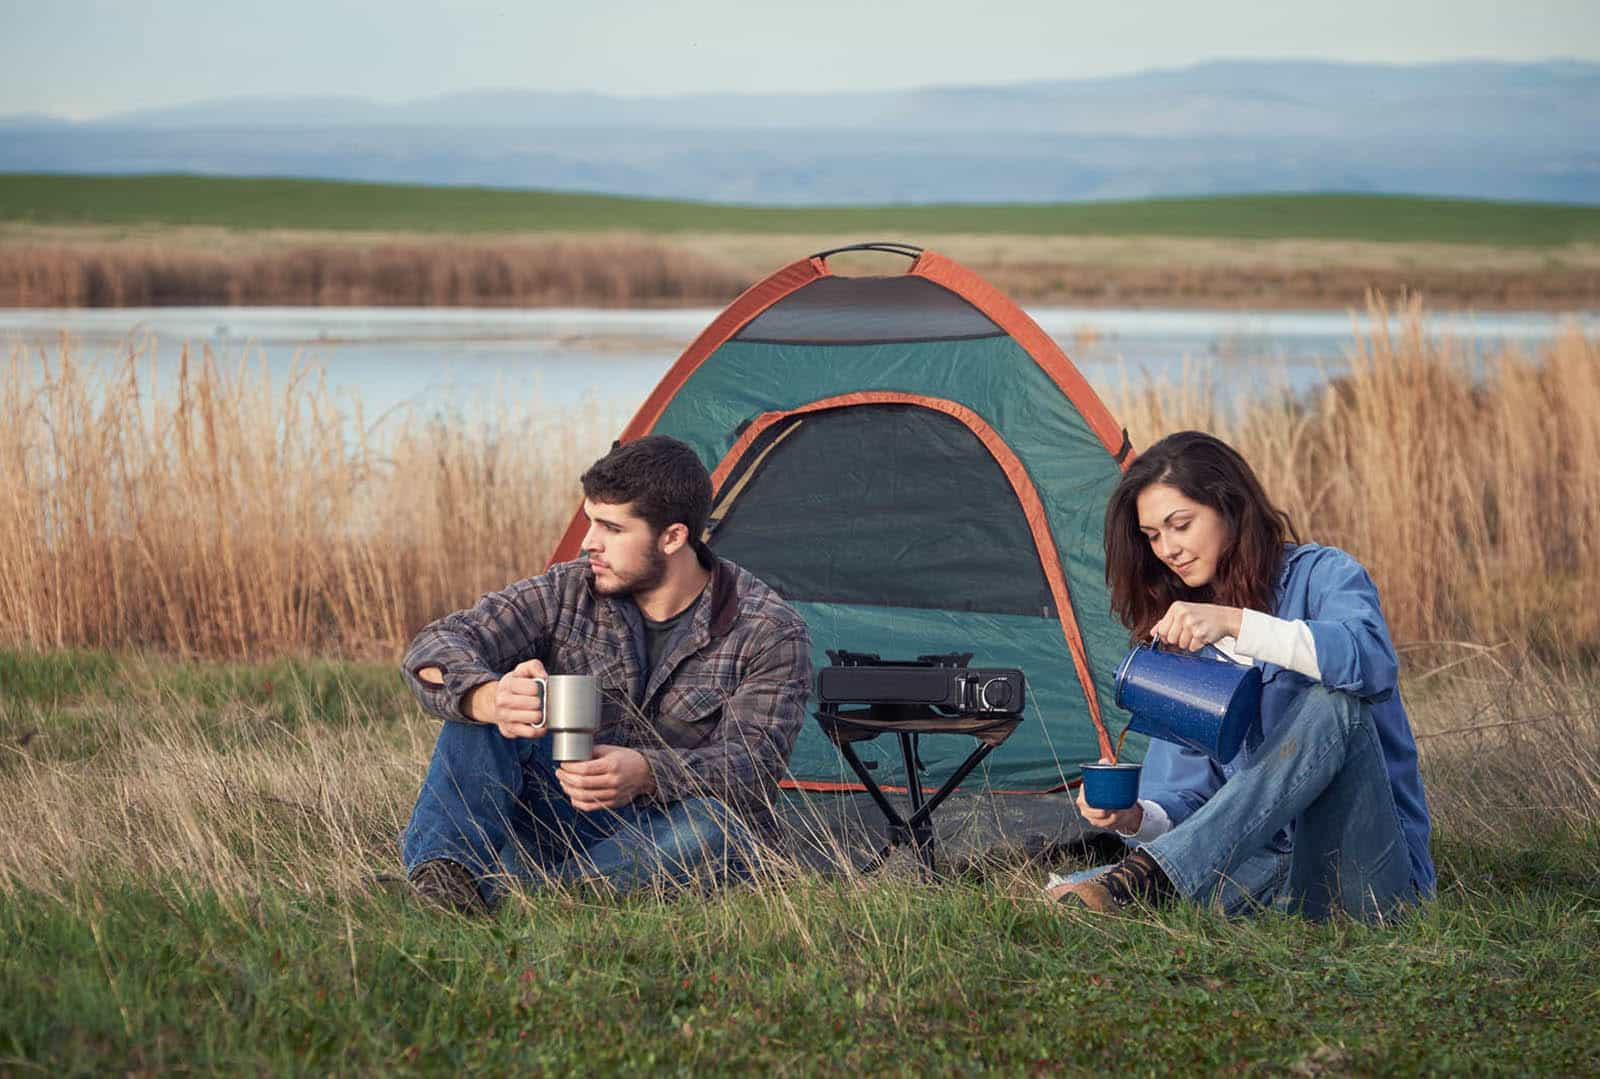 Morning coffee on a camping trip.